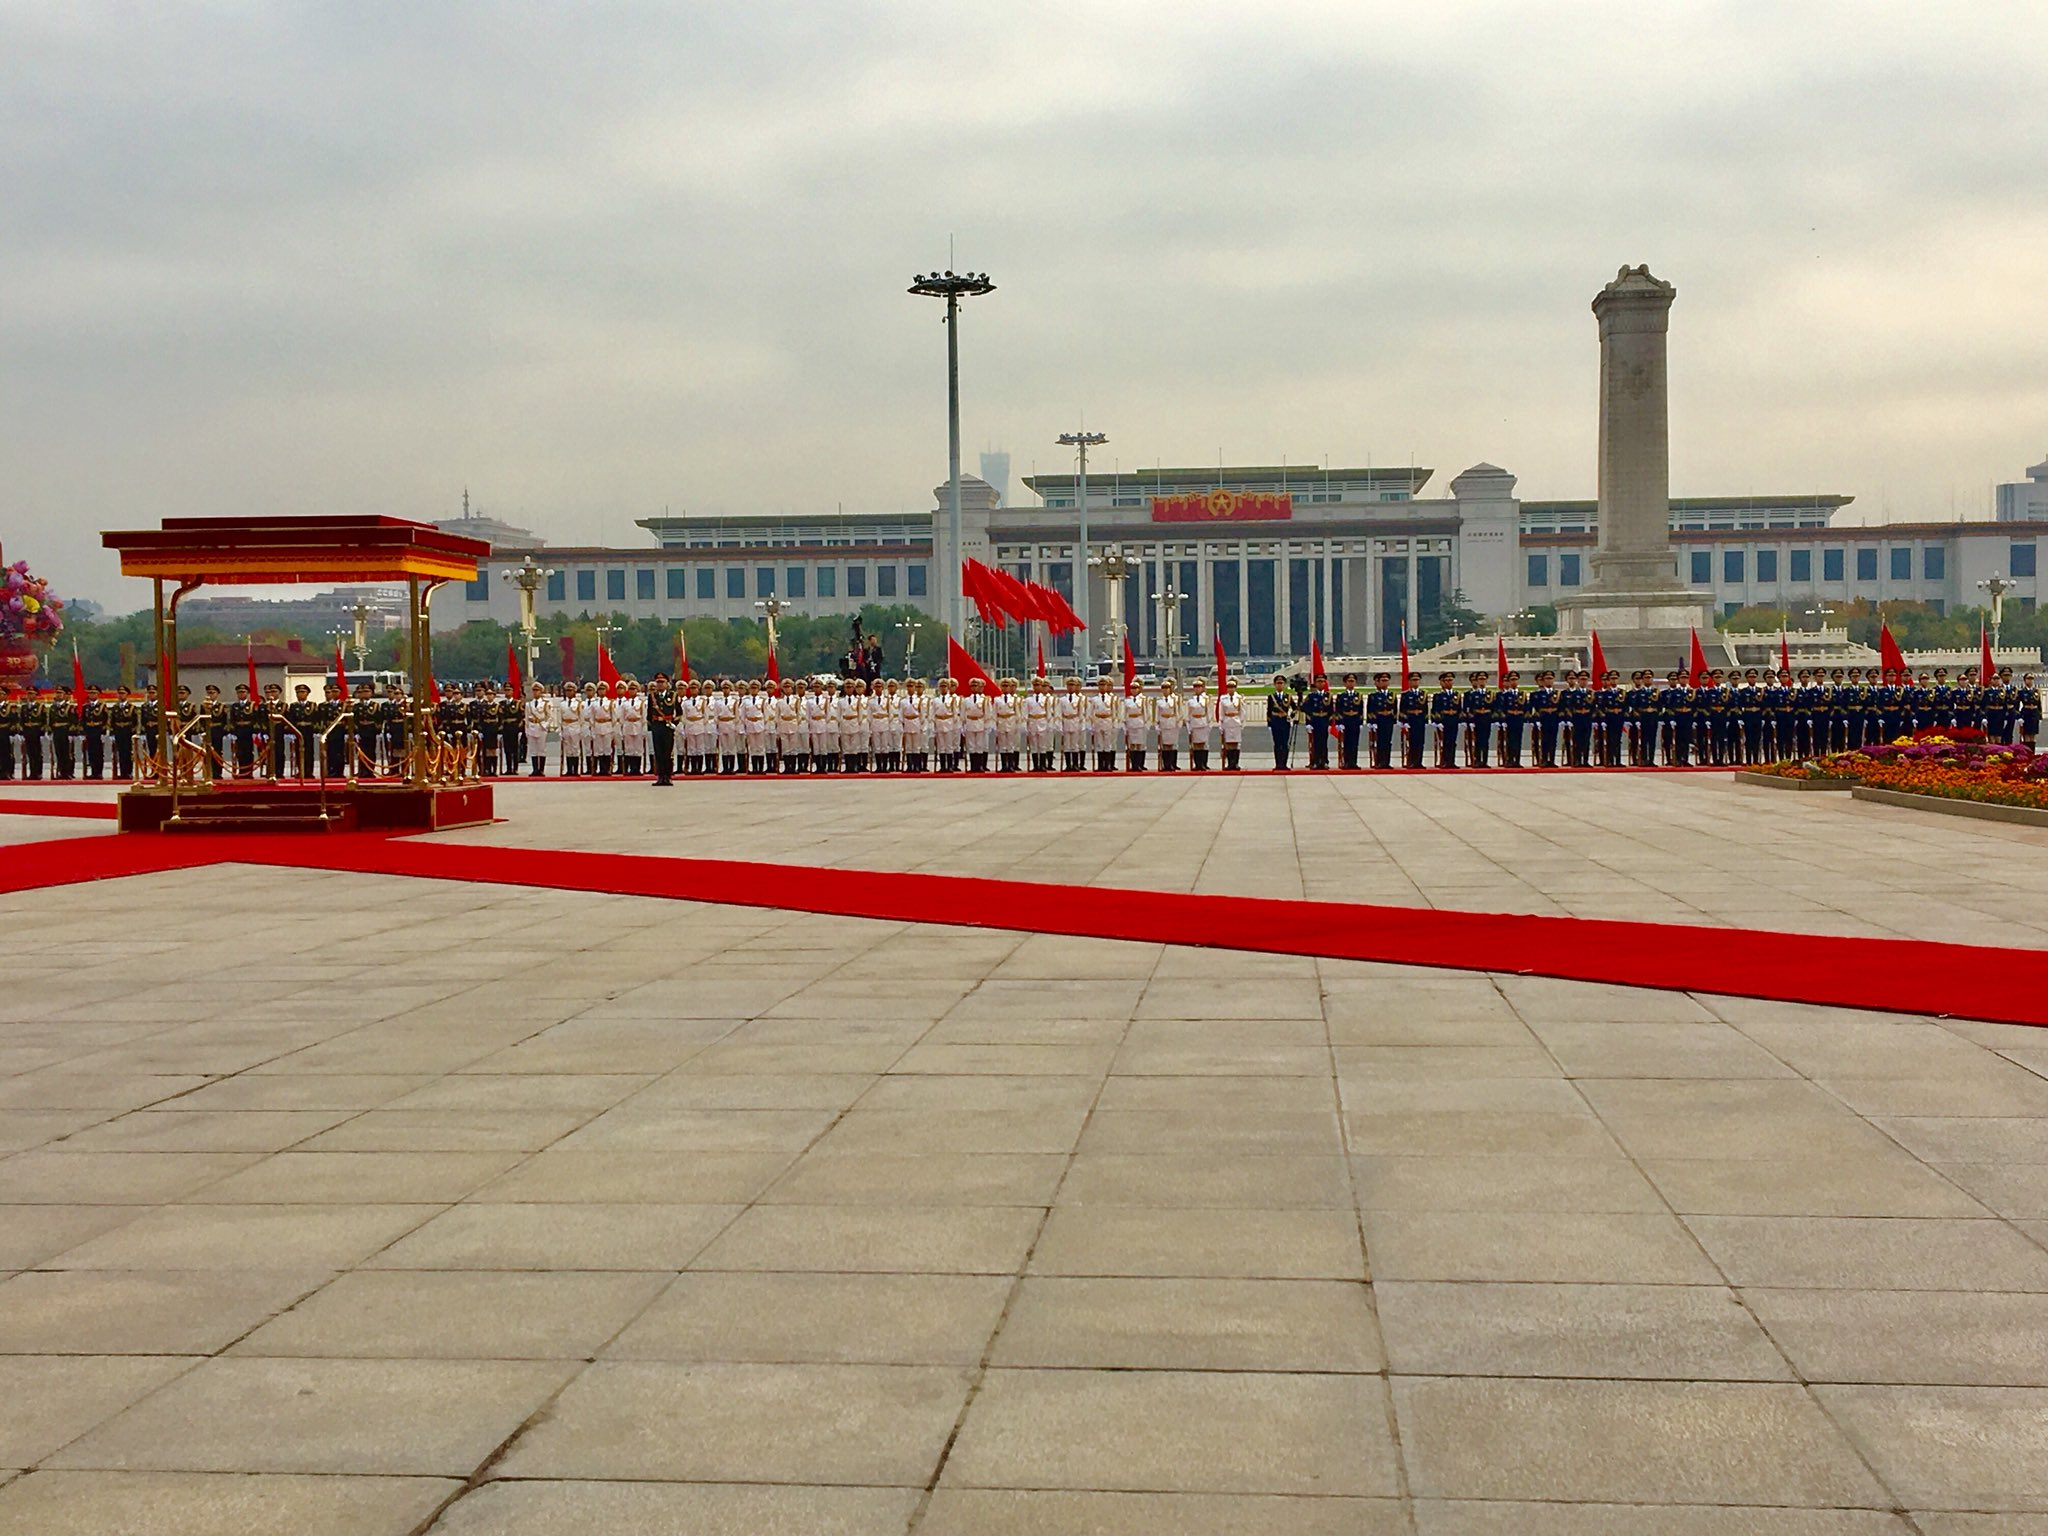 Welcome ceremony in Beijing, China at the Great Hall. #POTUSinAsia https://t.co/xGkMq9txWF